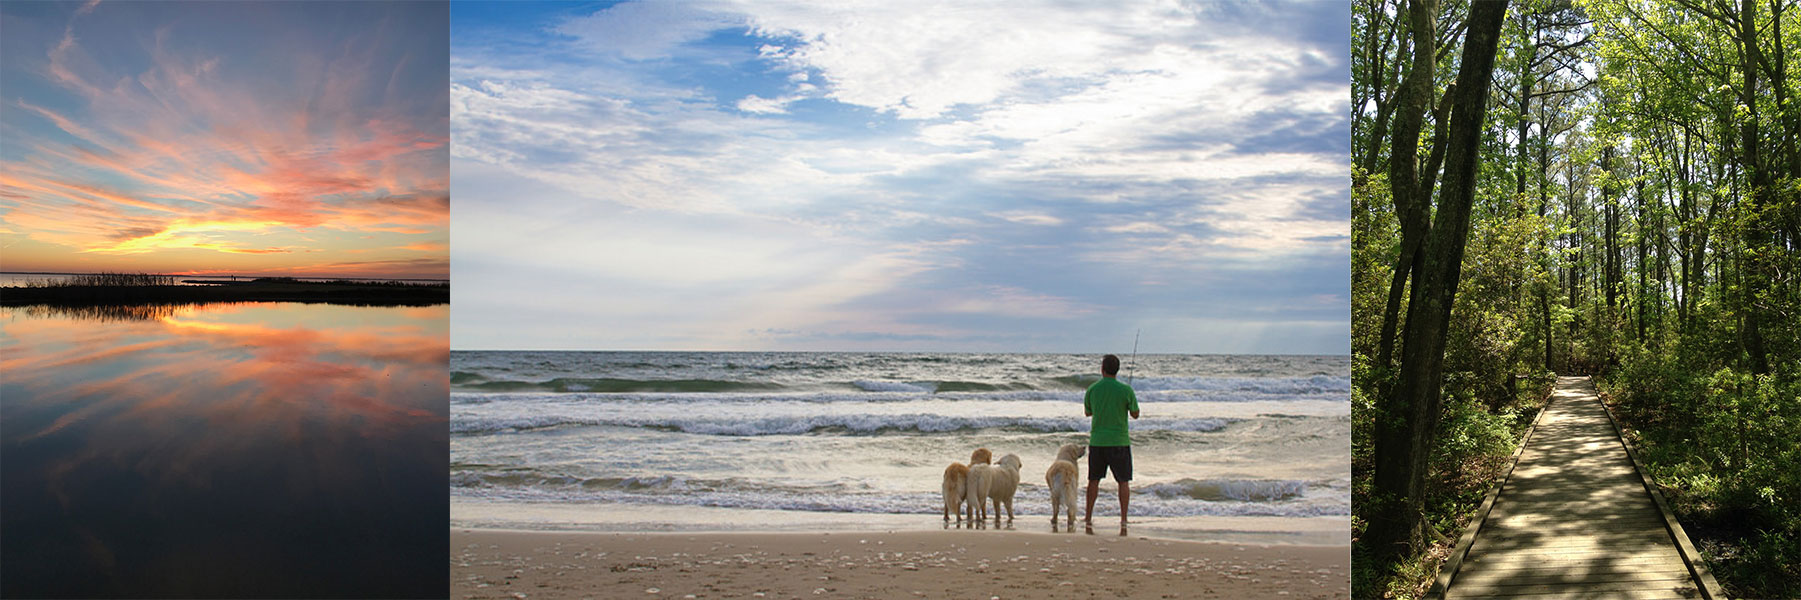 6 Things to Do This October in the Outer Banks